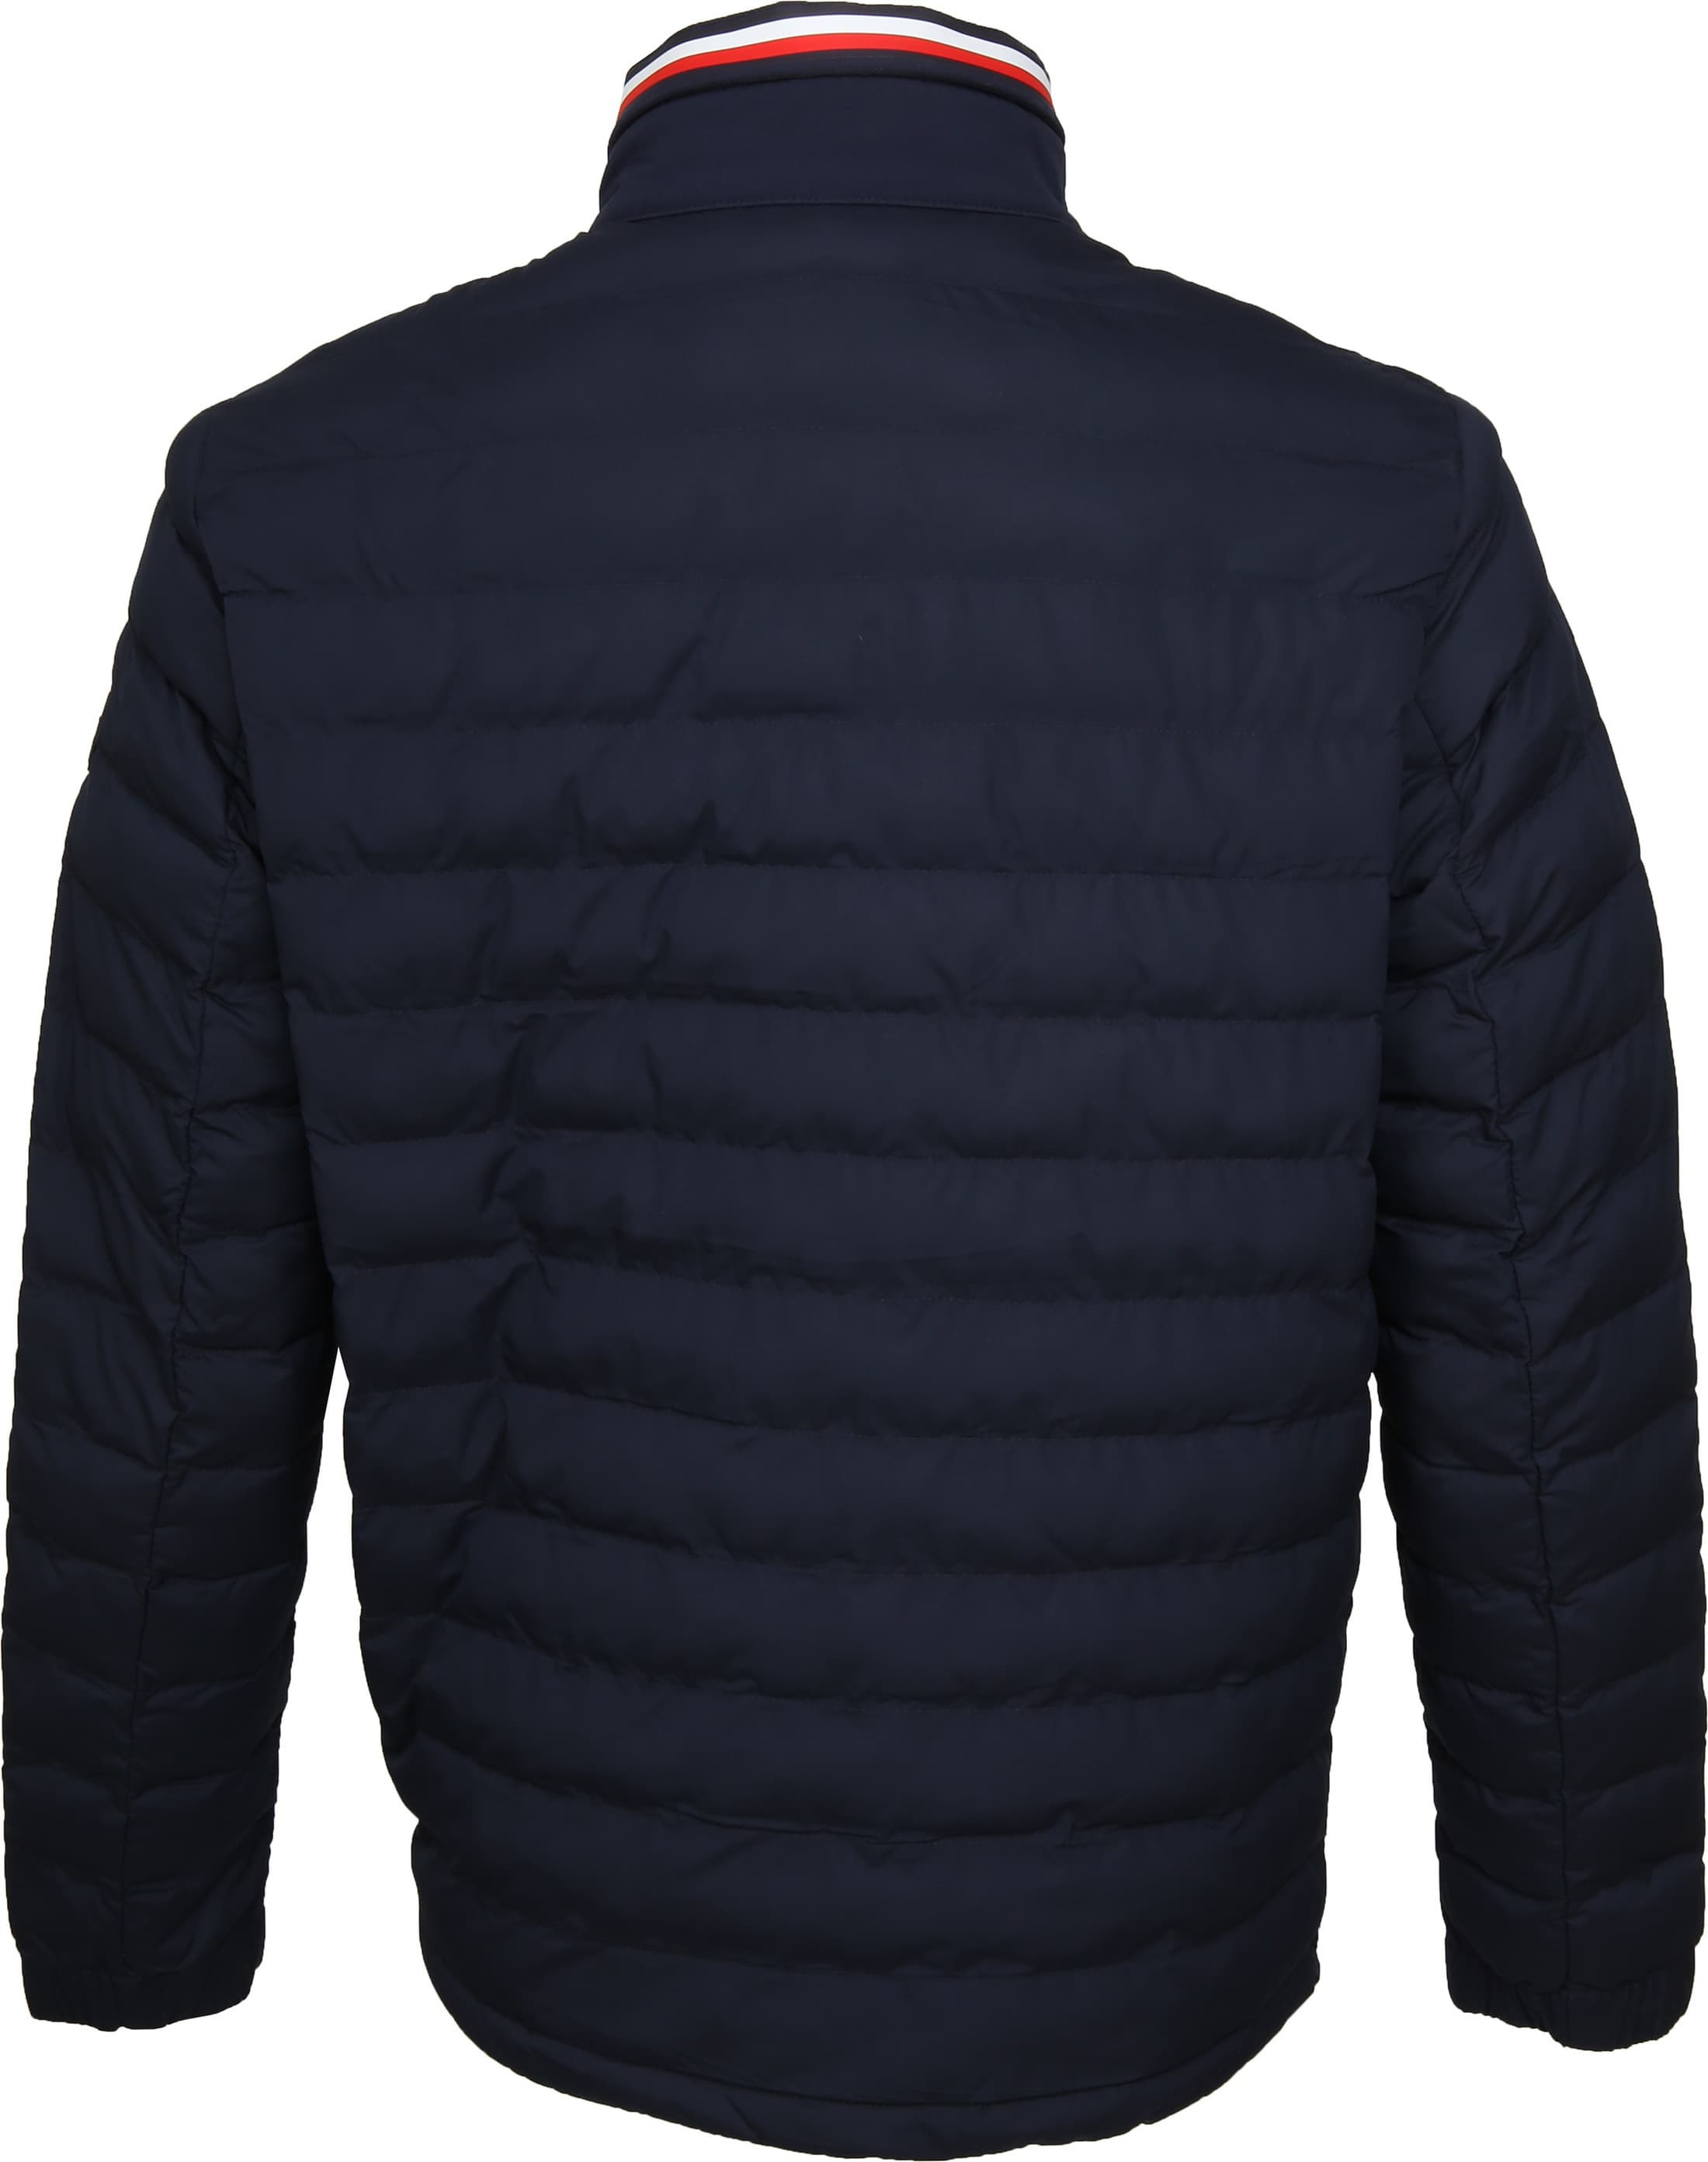 Tommy Hilfiger Jacket Quilted Navy photo 5